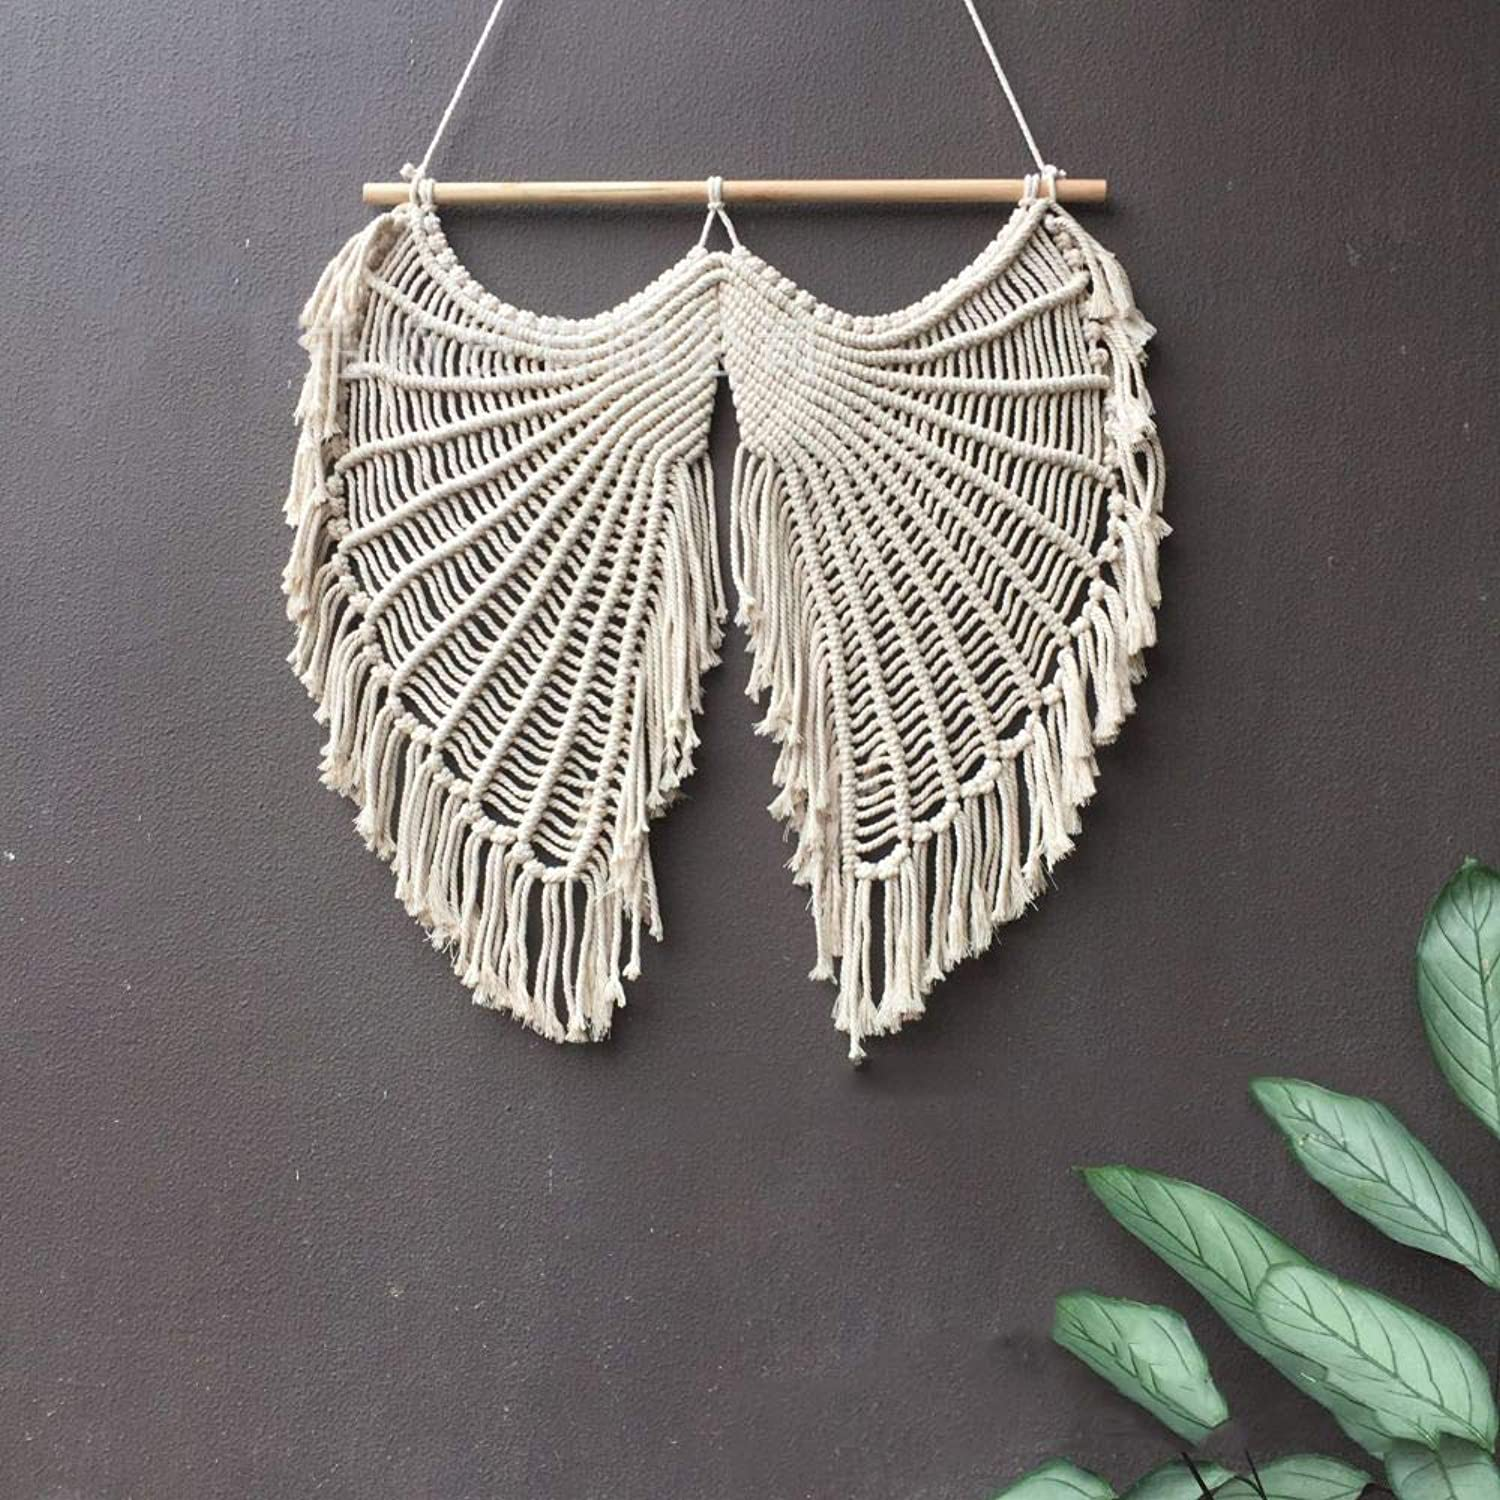 Handmade Macrame Wall Hanging Hand-Woven Tapestry Angel Wings Christmas Tapestry Wall Decoration Painting